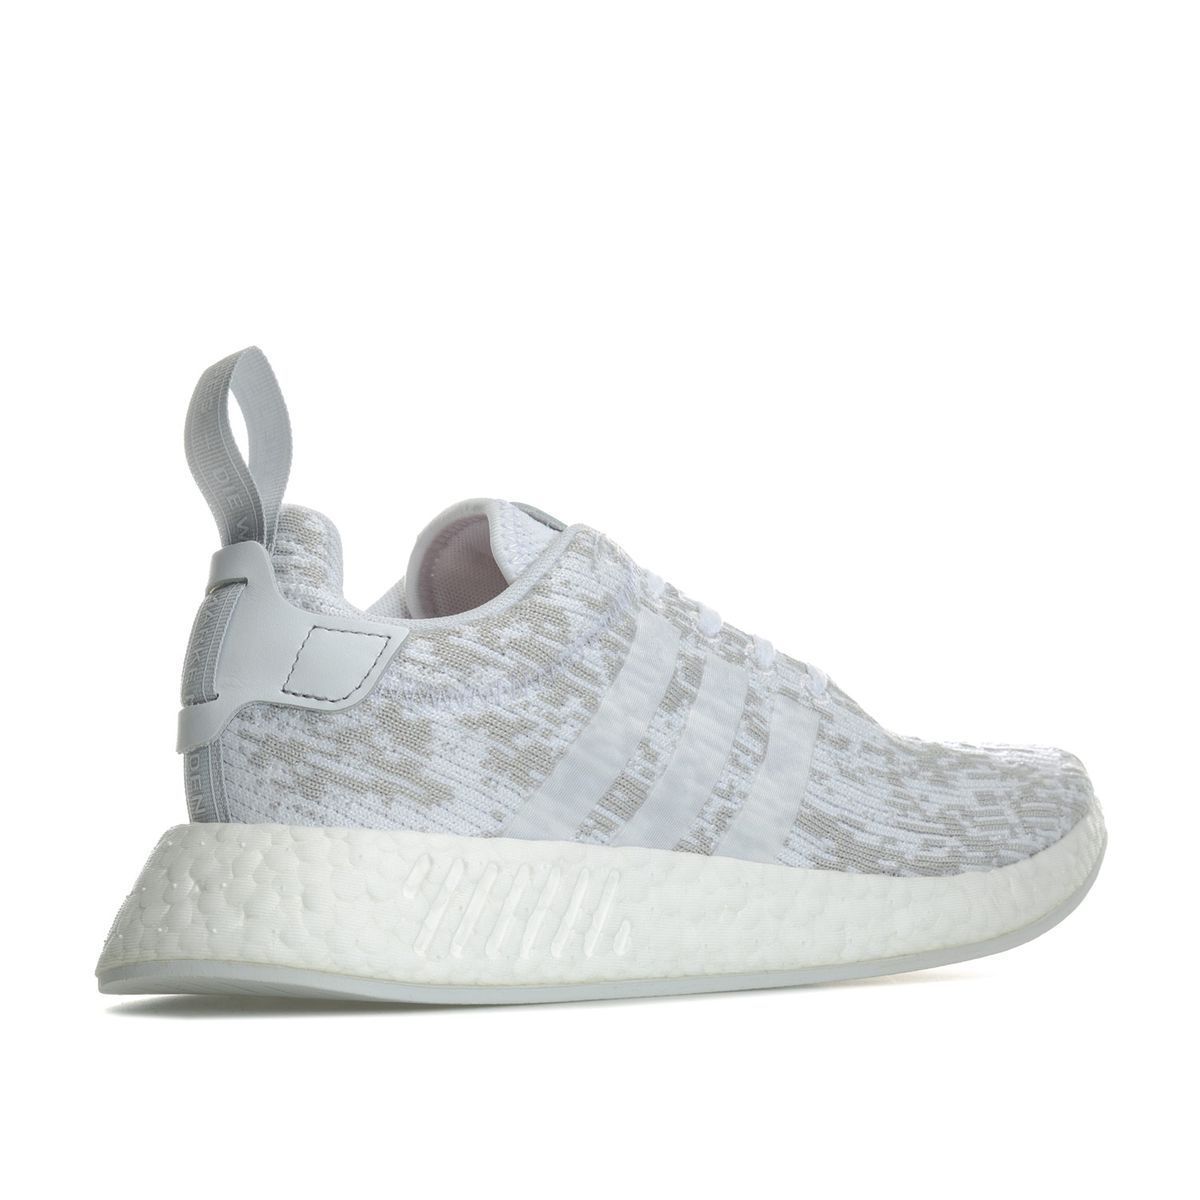 on feet images of amazing selection wholesale dealer Baskets Nmd_ R2 - Taille : 36;37 1/3;38;38 2/3;39 1/3;40;40 ...